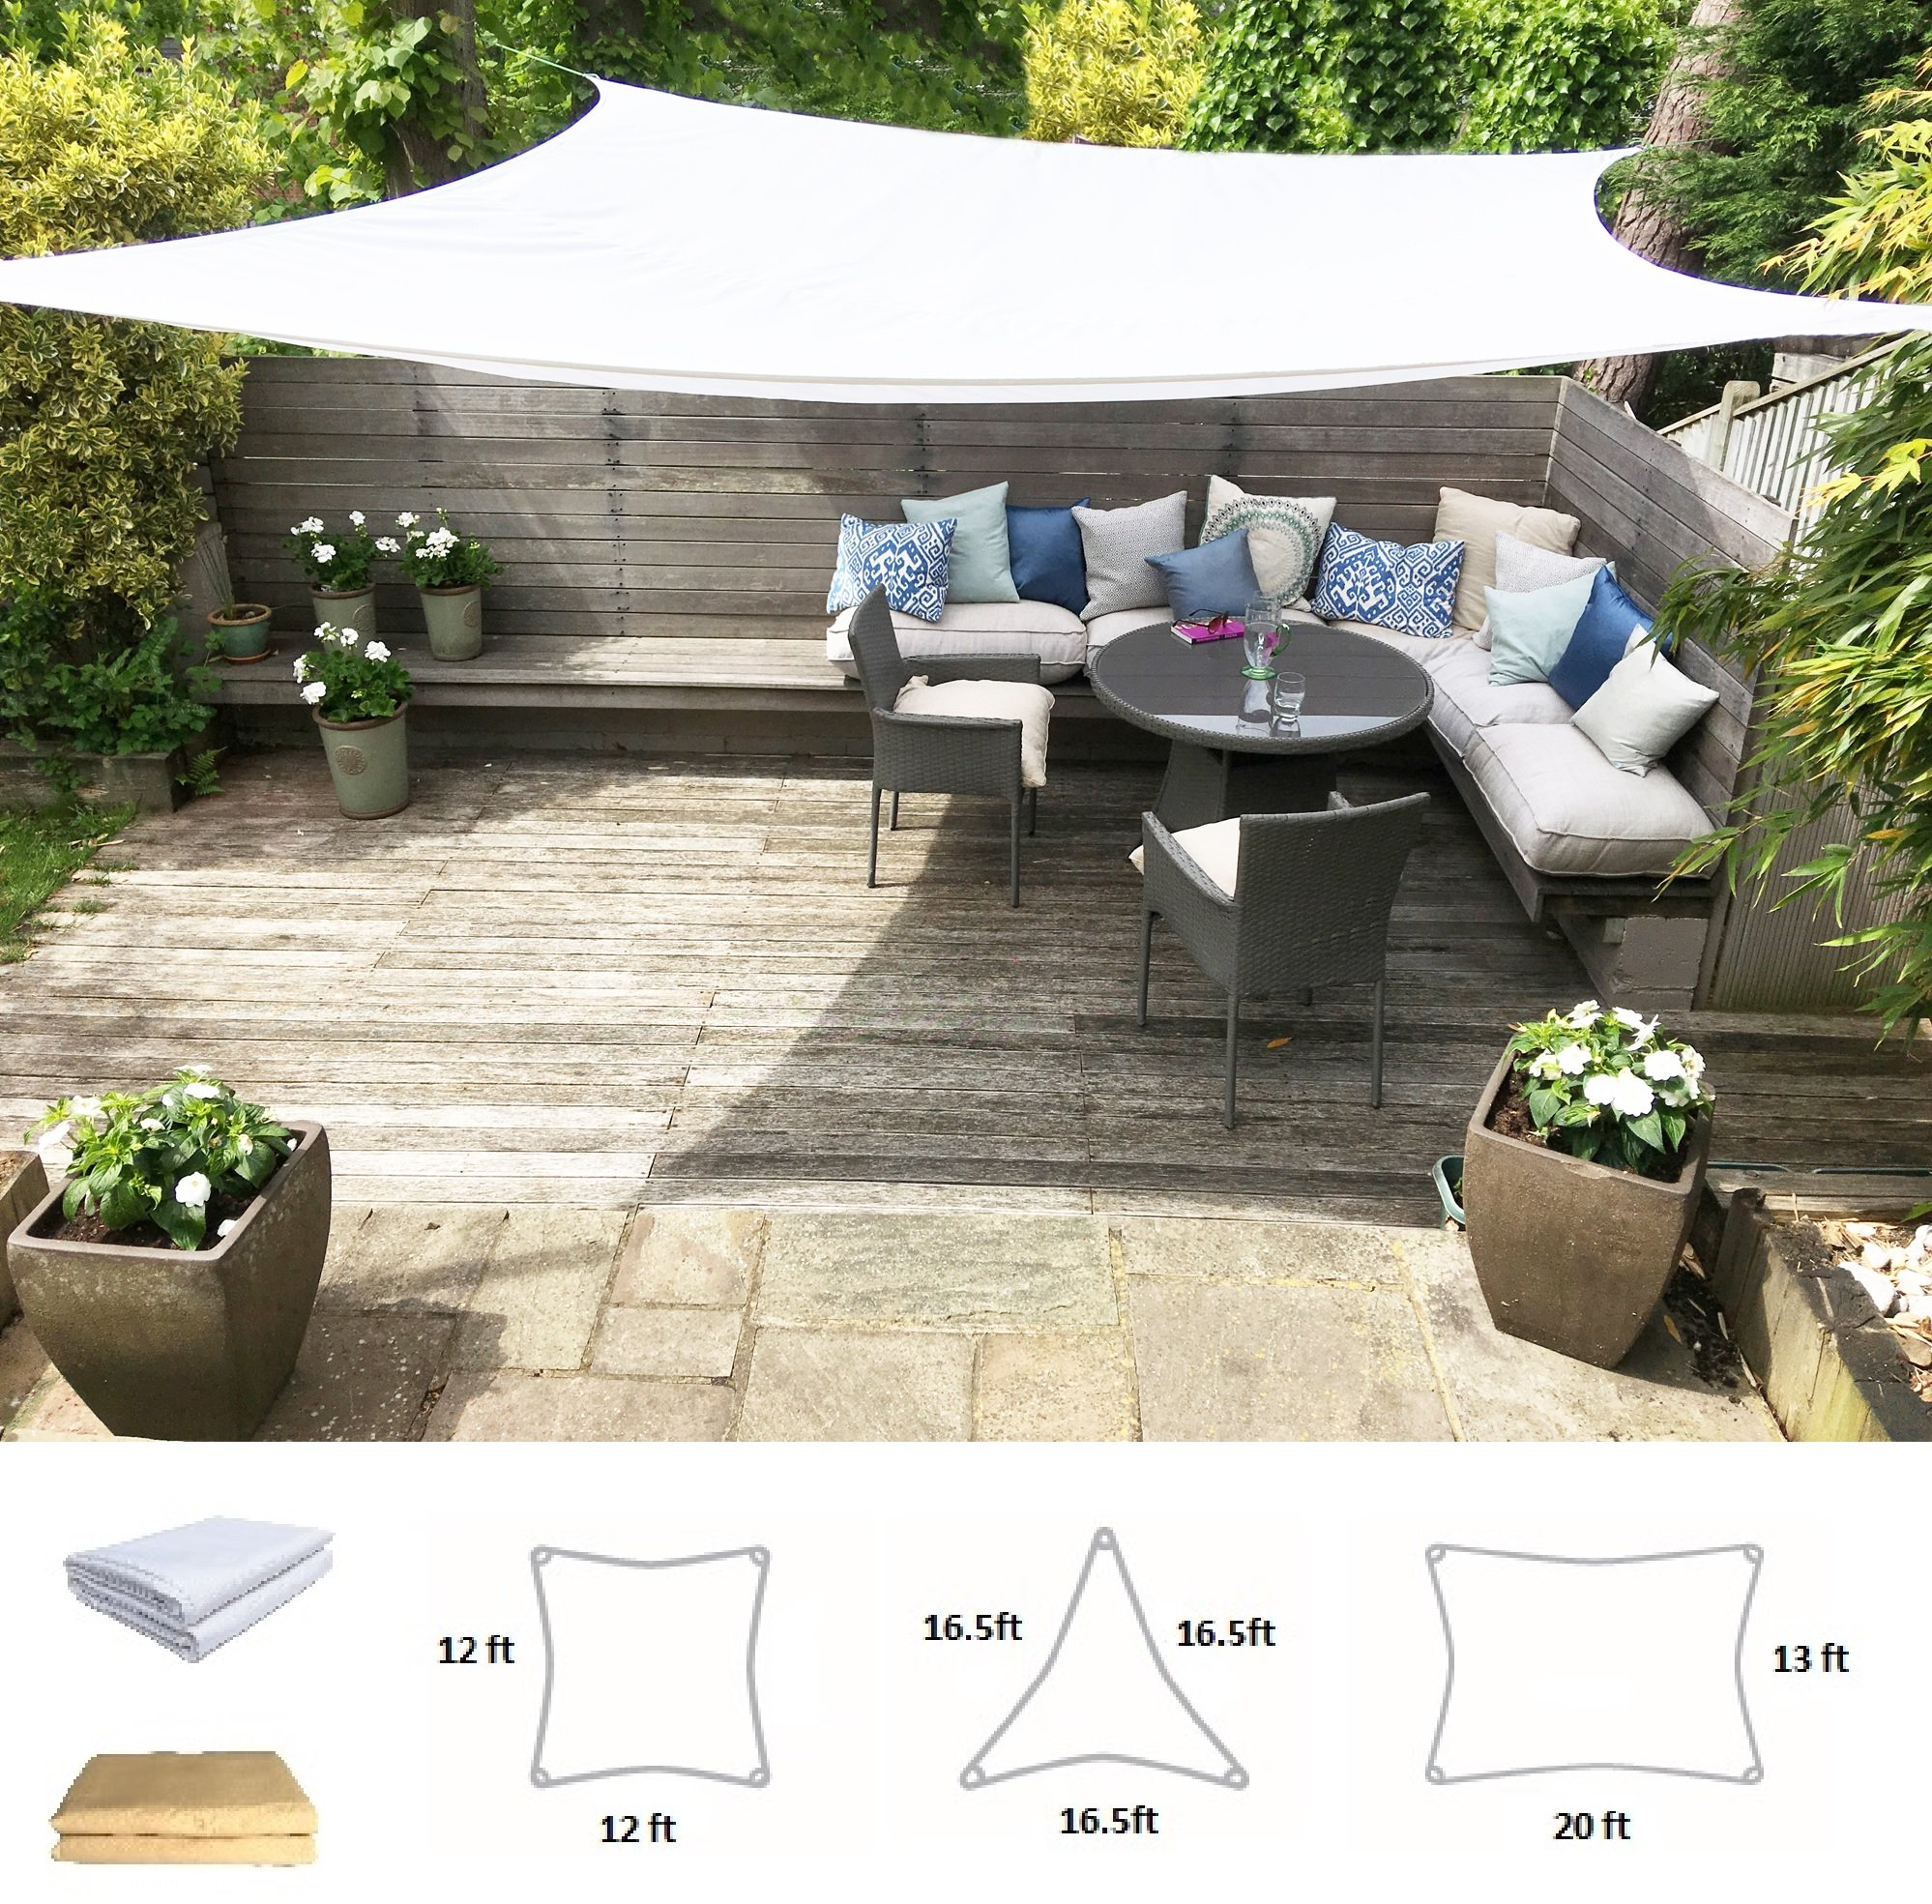 Clara Shade Sail Waterproof UV Sun Block Garden Patio Canopy Awning Outdoor Indoor Rectangle 20'x13' Pure White